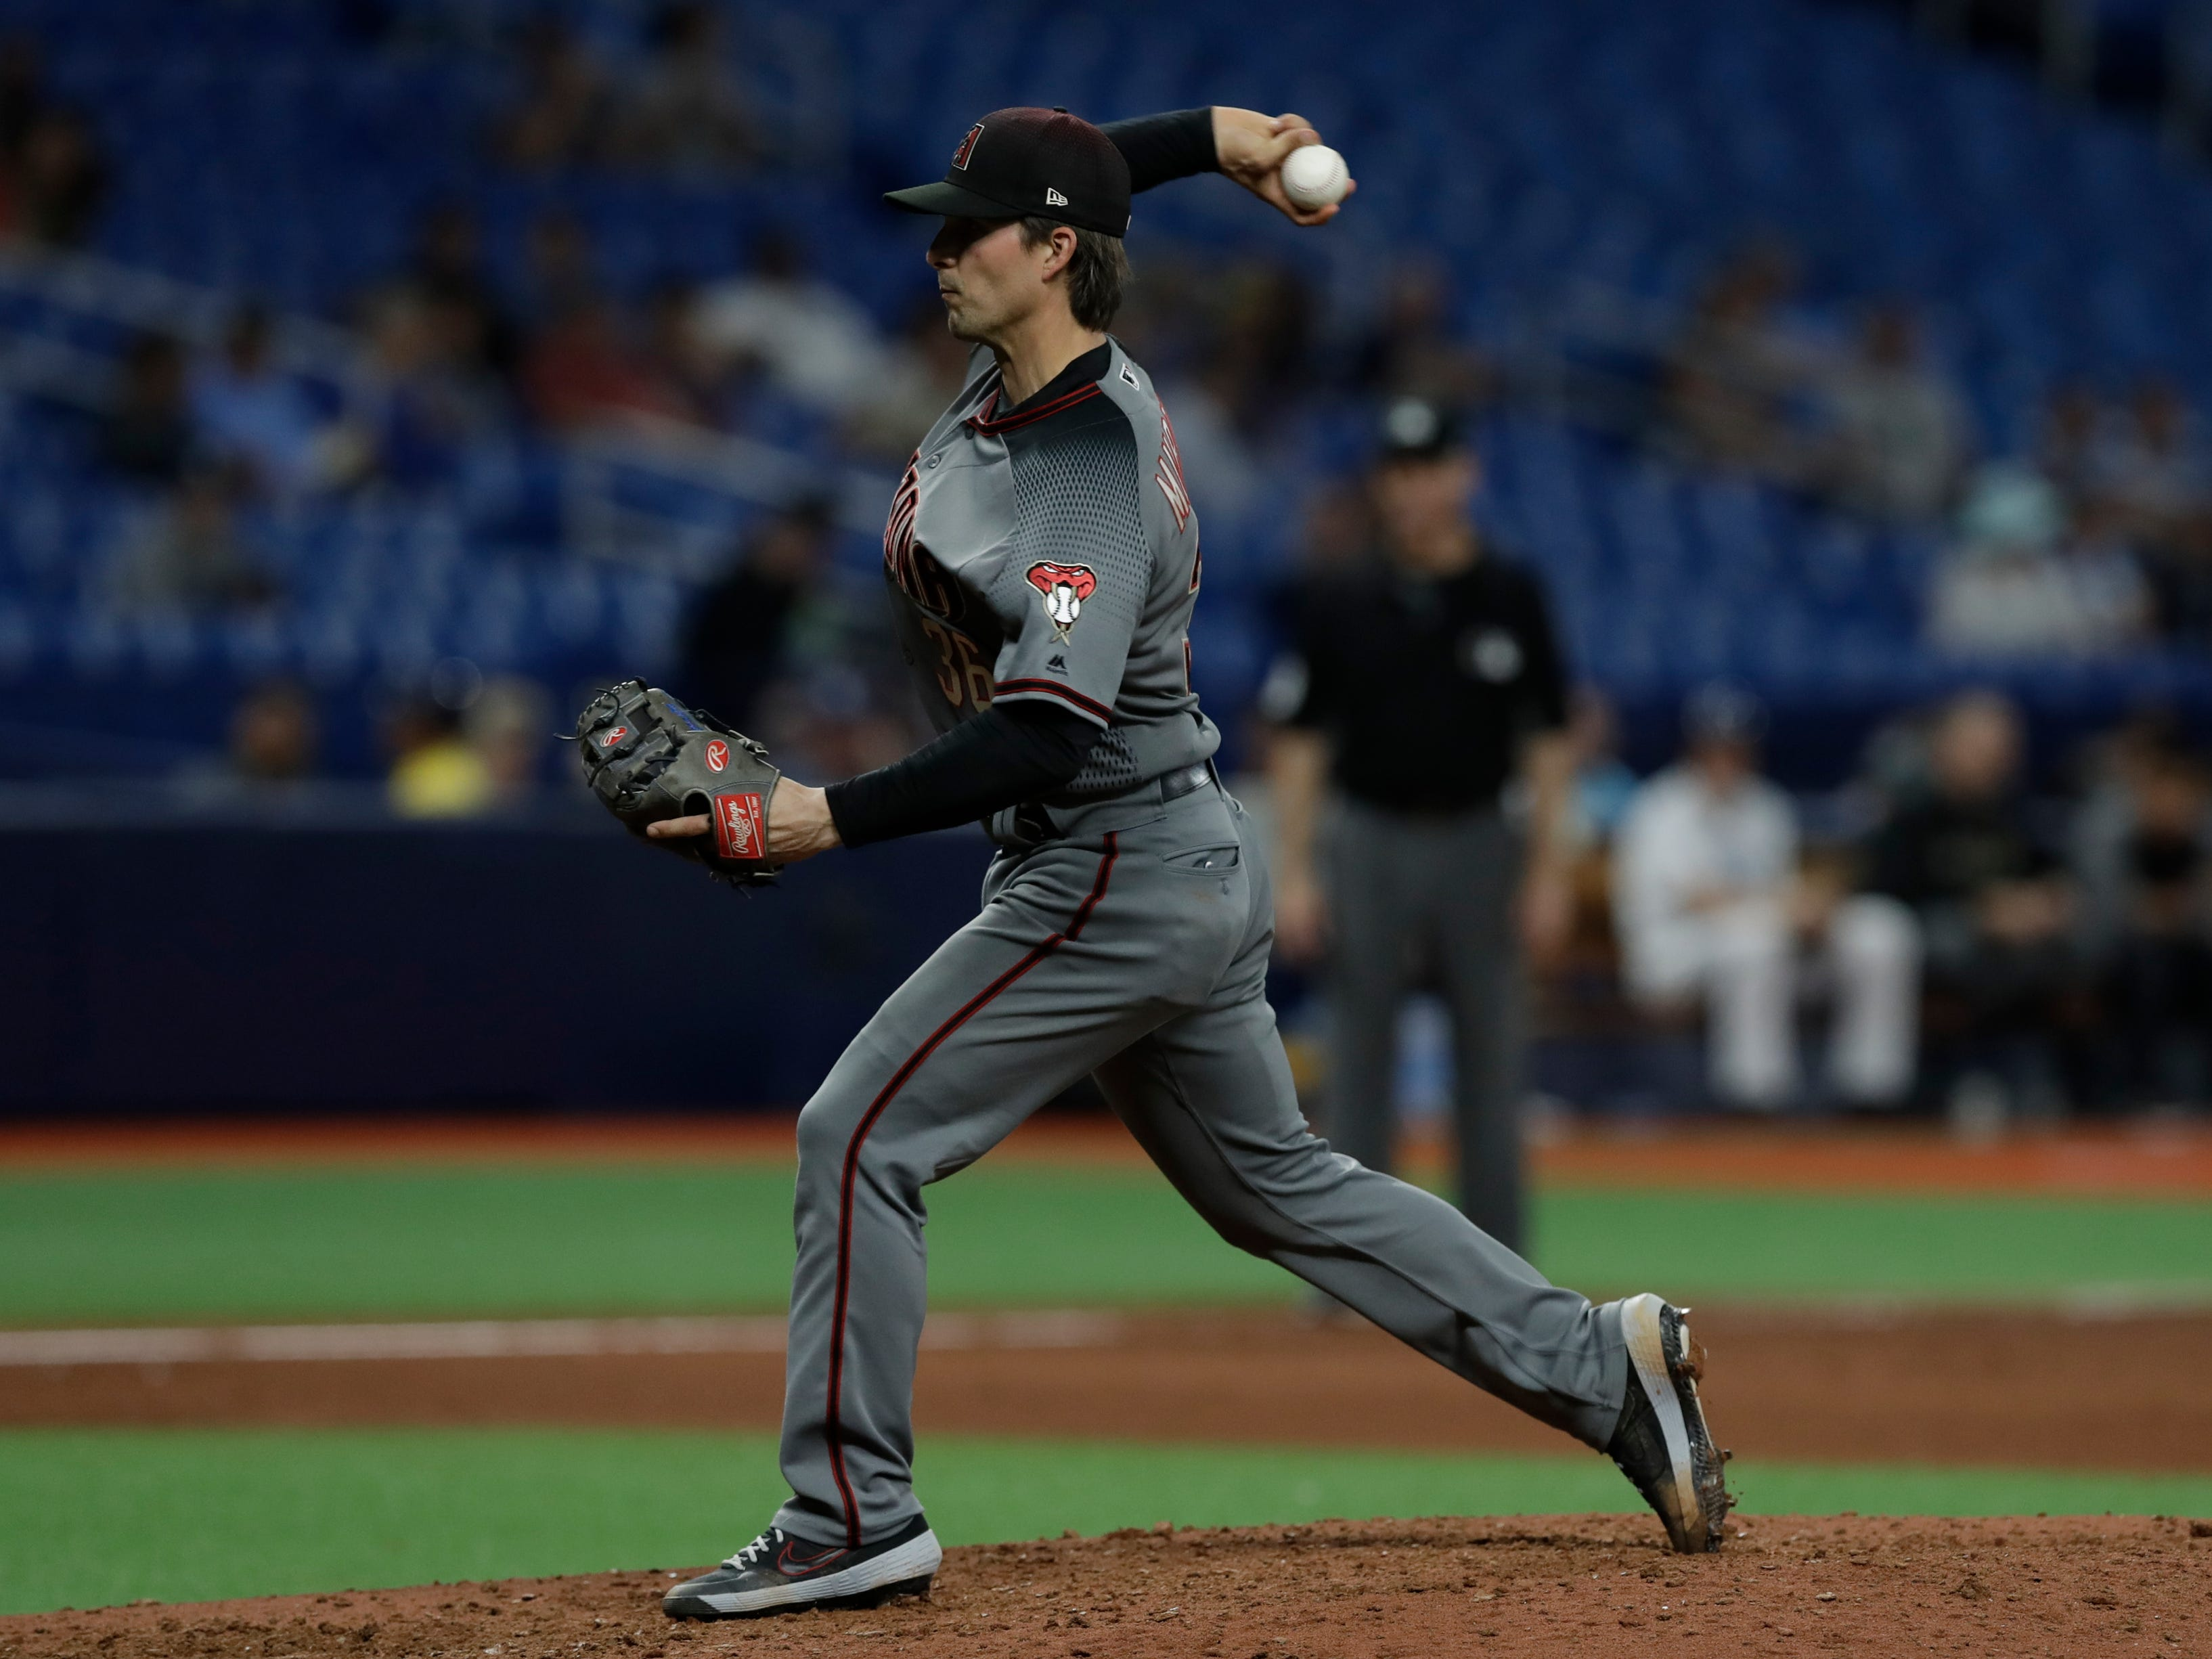 Arizona Diamondbacks catcher John Ryan Murphy pitches to the Tampa Bay Rays during the eighth inning of a baseball game Monday, May 6, 2019, in St. Petersburg, Fla. (AP Photo/Chris O'Meara)